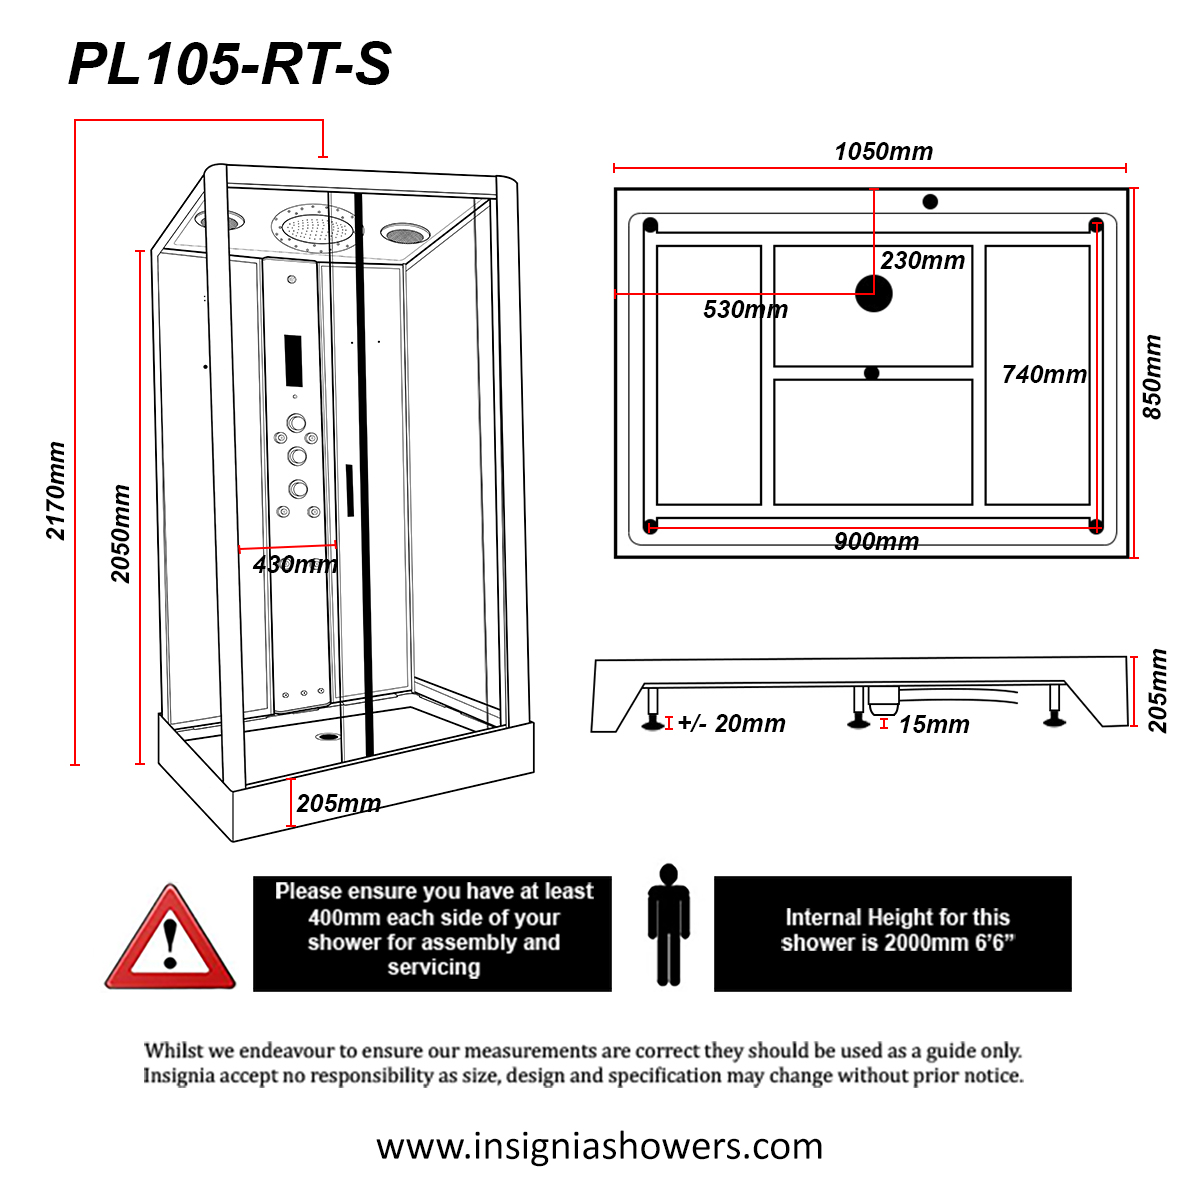 PL105-RT-S